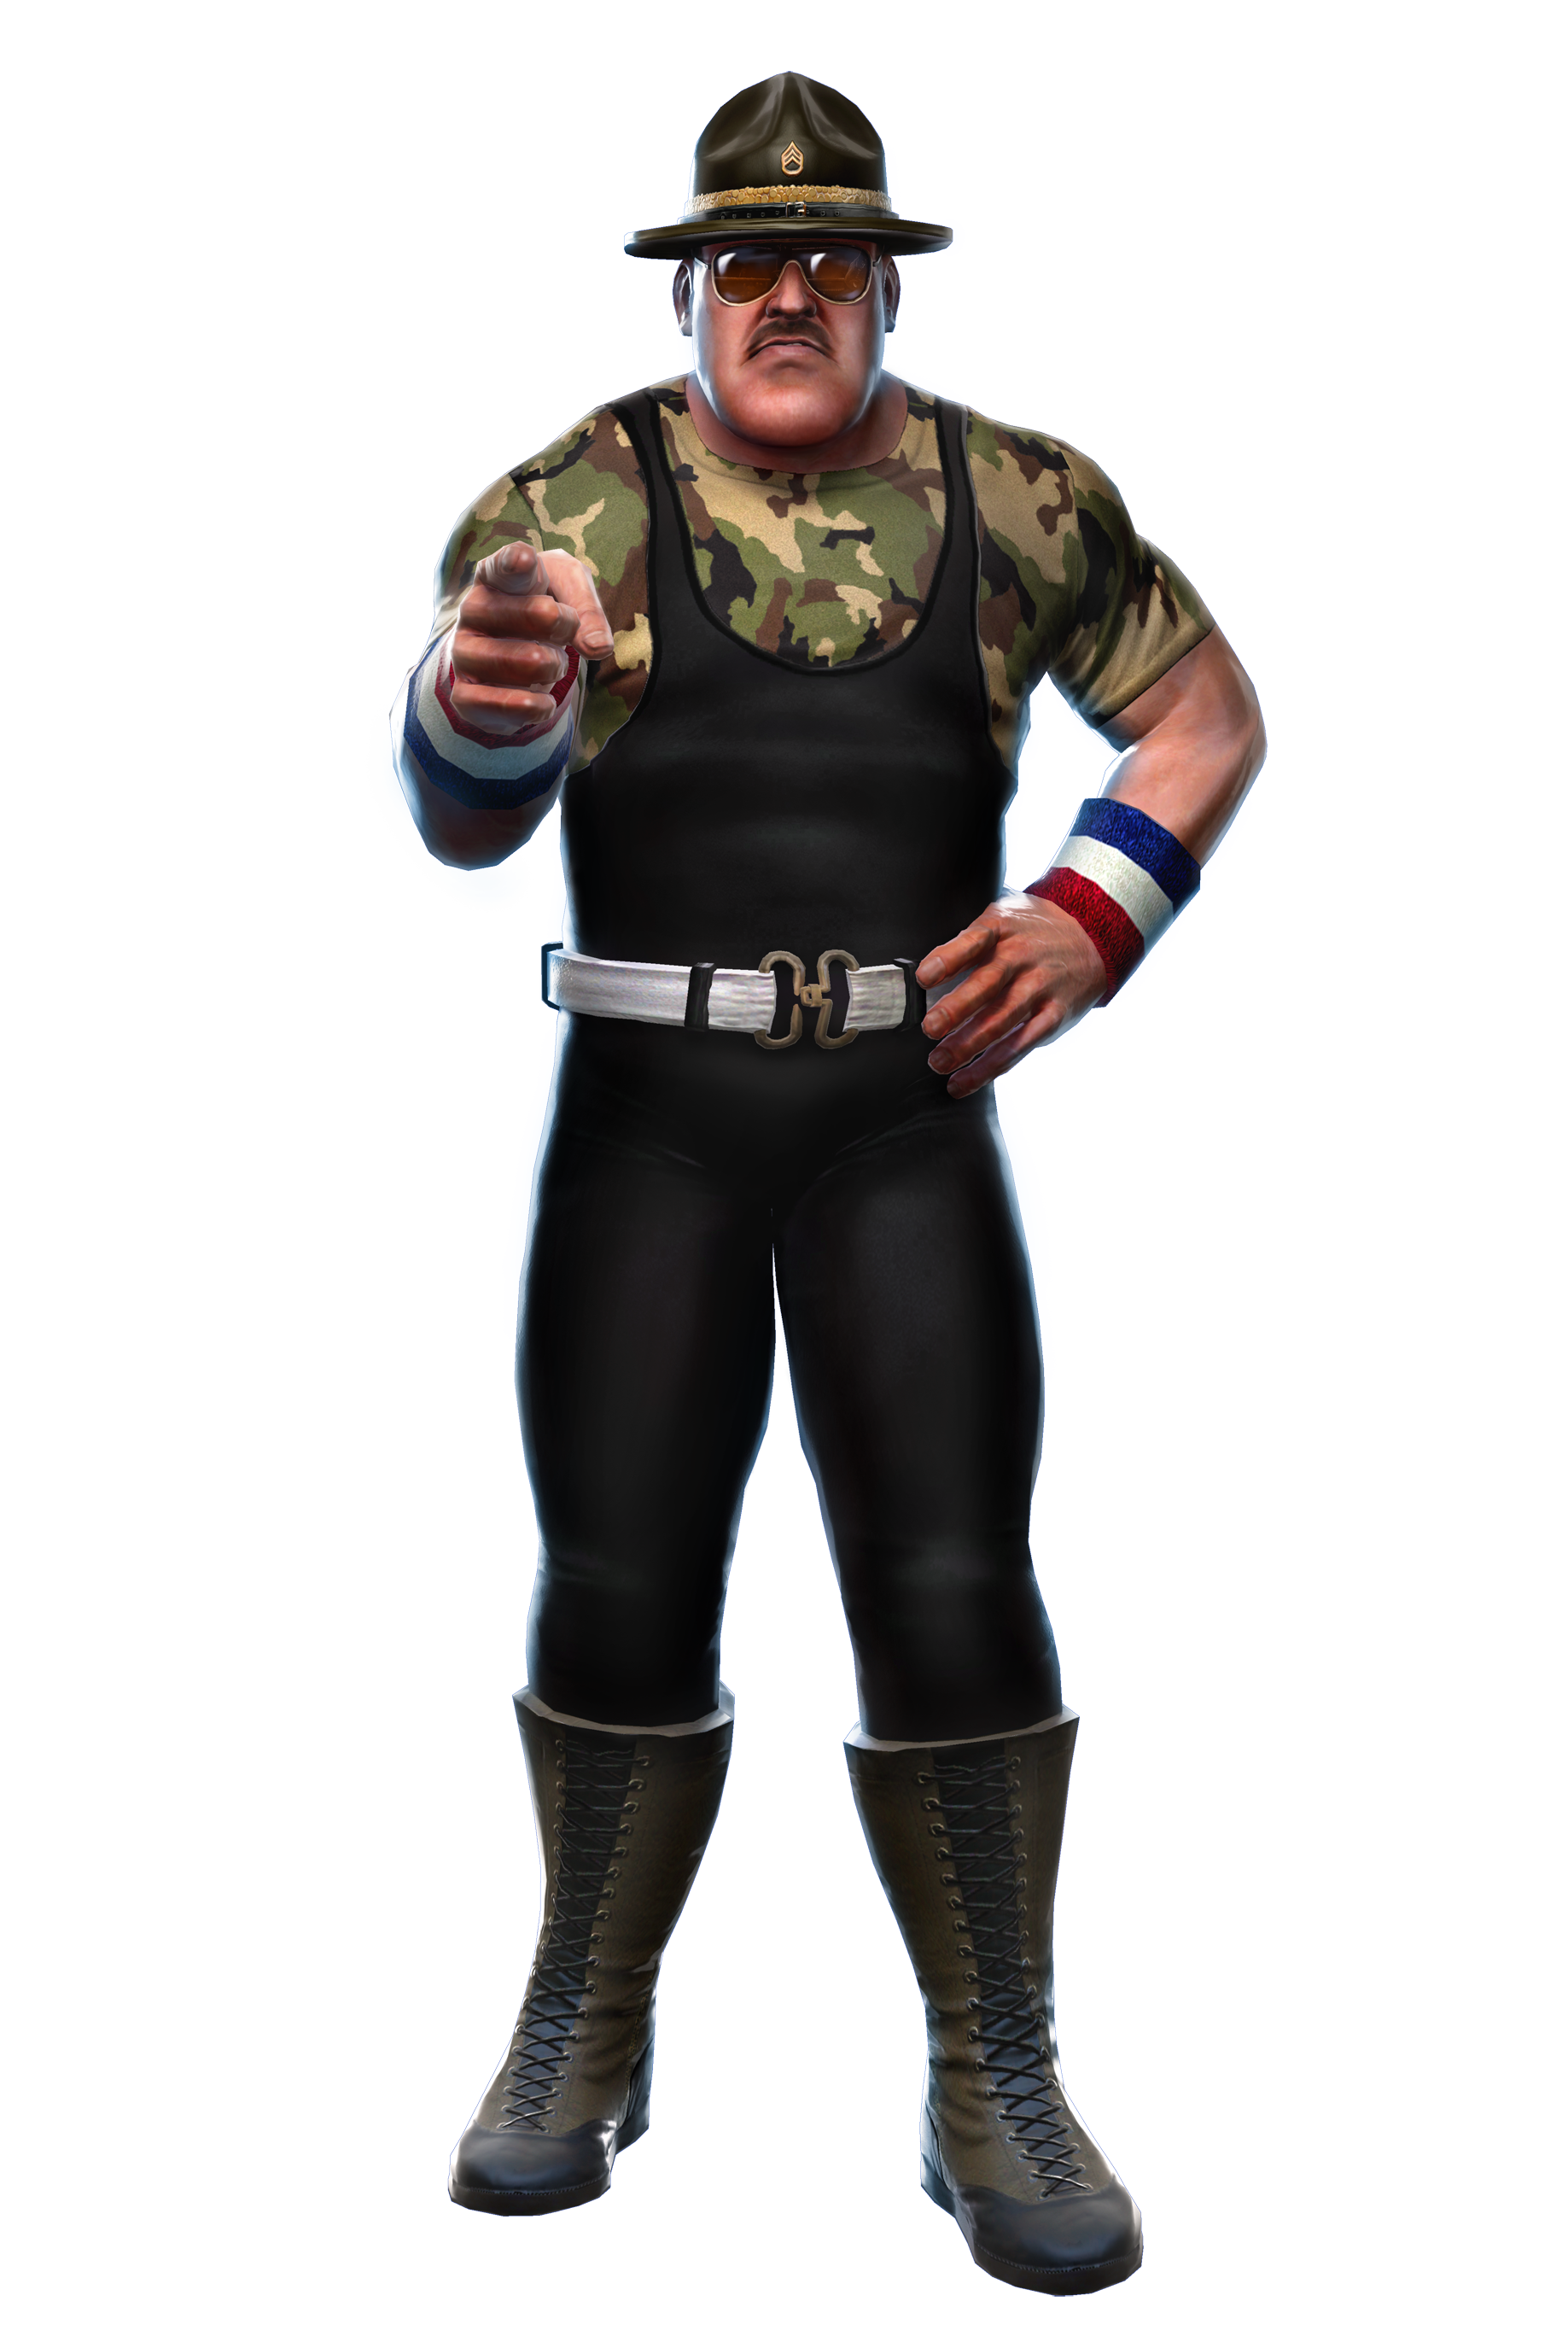 Sgt. Slaughter | WWE All Stars Wiki | FANDOM powered by Wikia